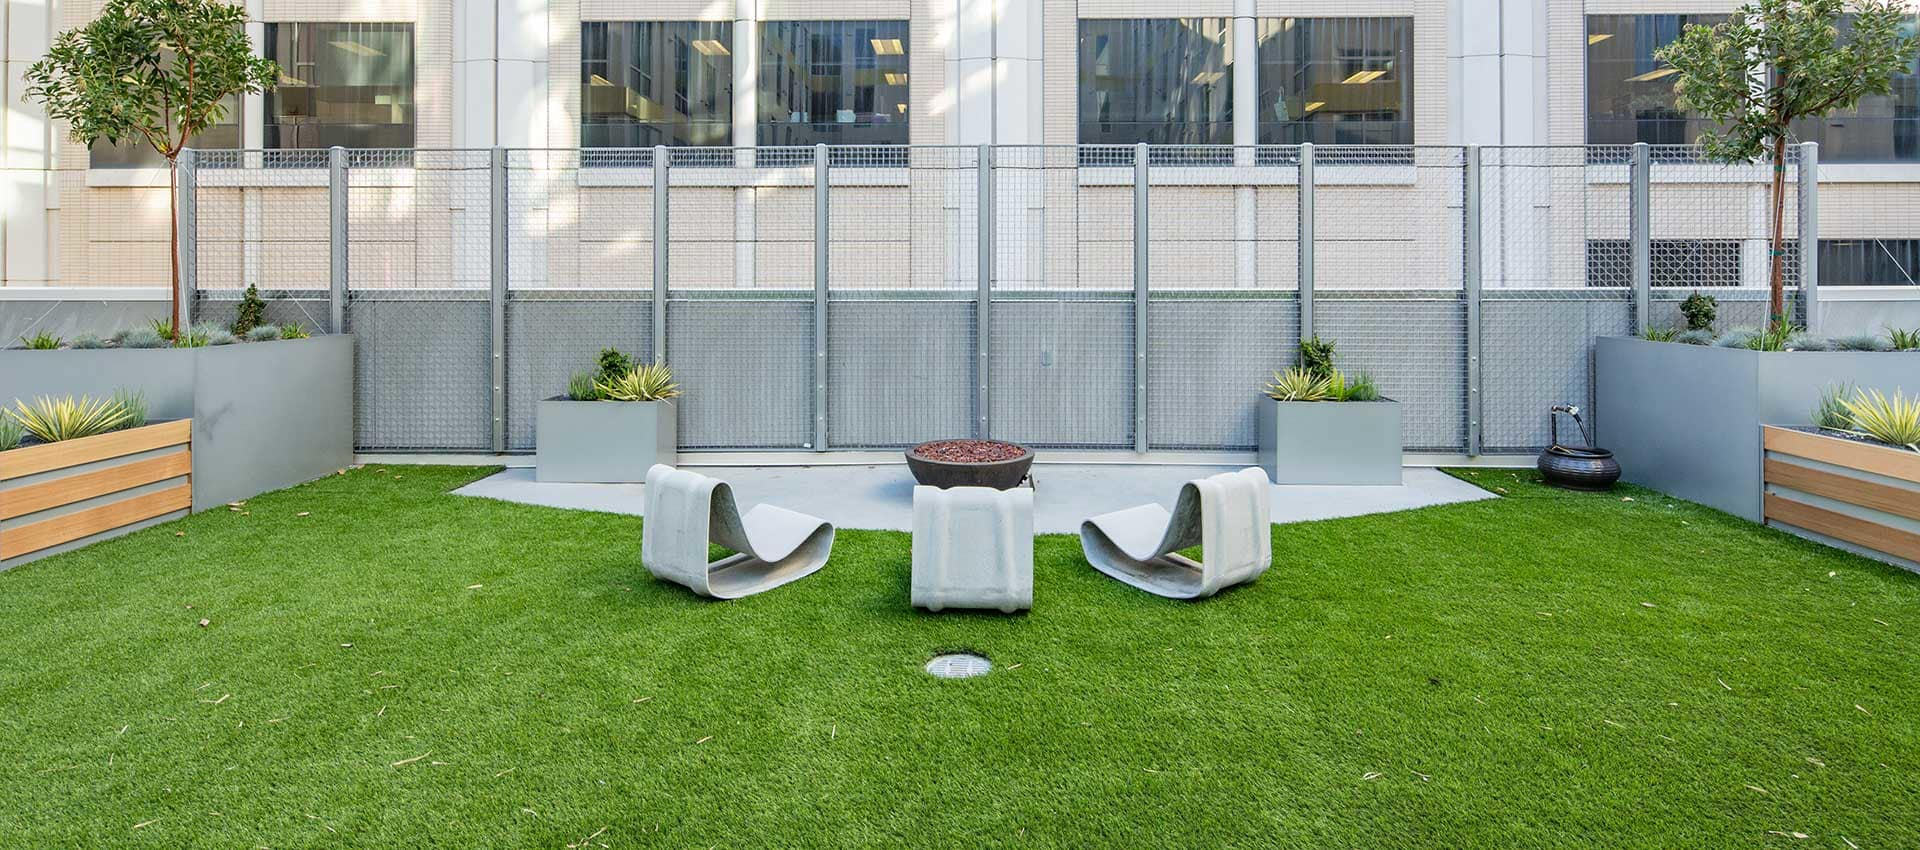 Fire pit in the EVIVA Midtown courtyard